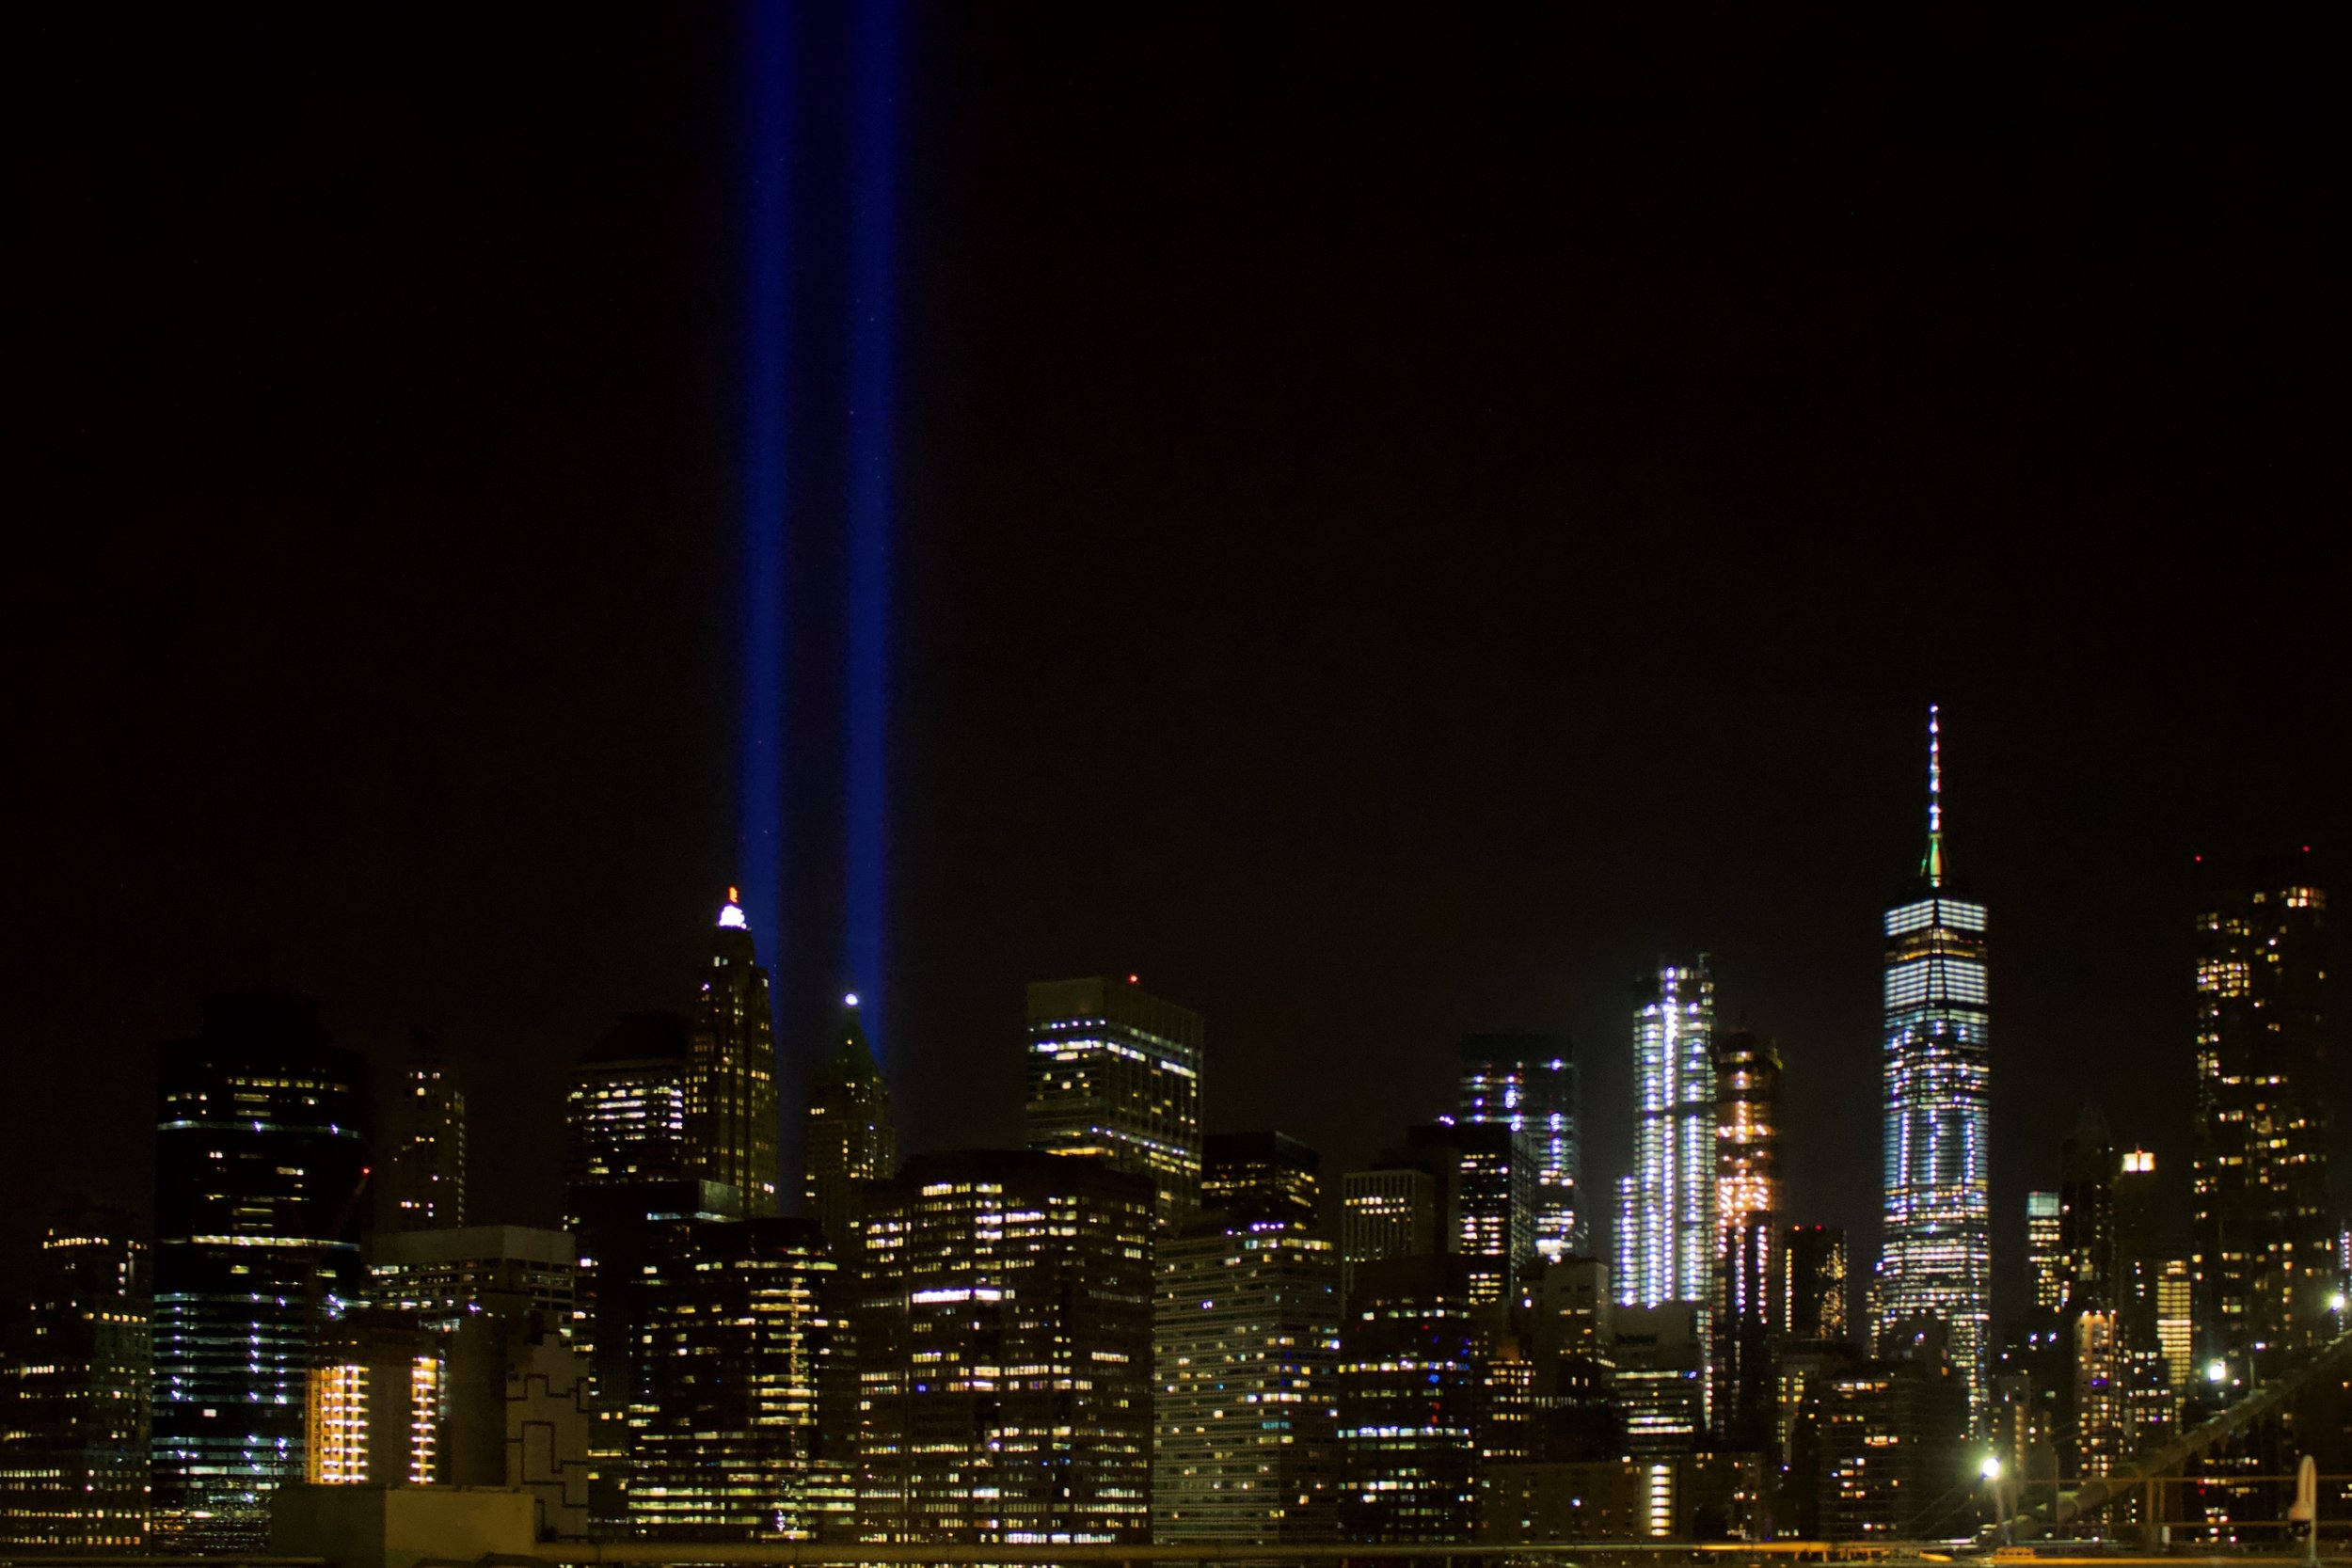 The Tribute in Light is an art installation of 88 searchlights placed six blocks south of the World Trade Center on top of the Battery Parking Garage in New York City to create two vertical columns of light to represent the Twin Towers in remembrance of the September 11 attacks. || Photo credit to Gabriela Kressley